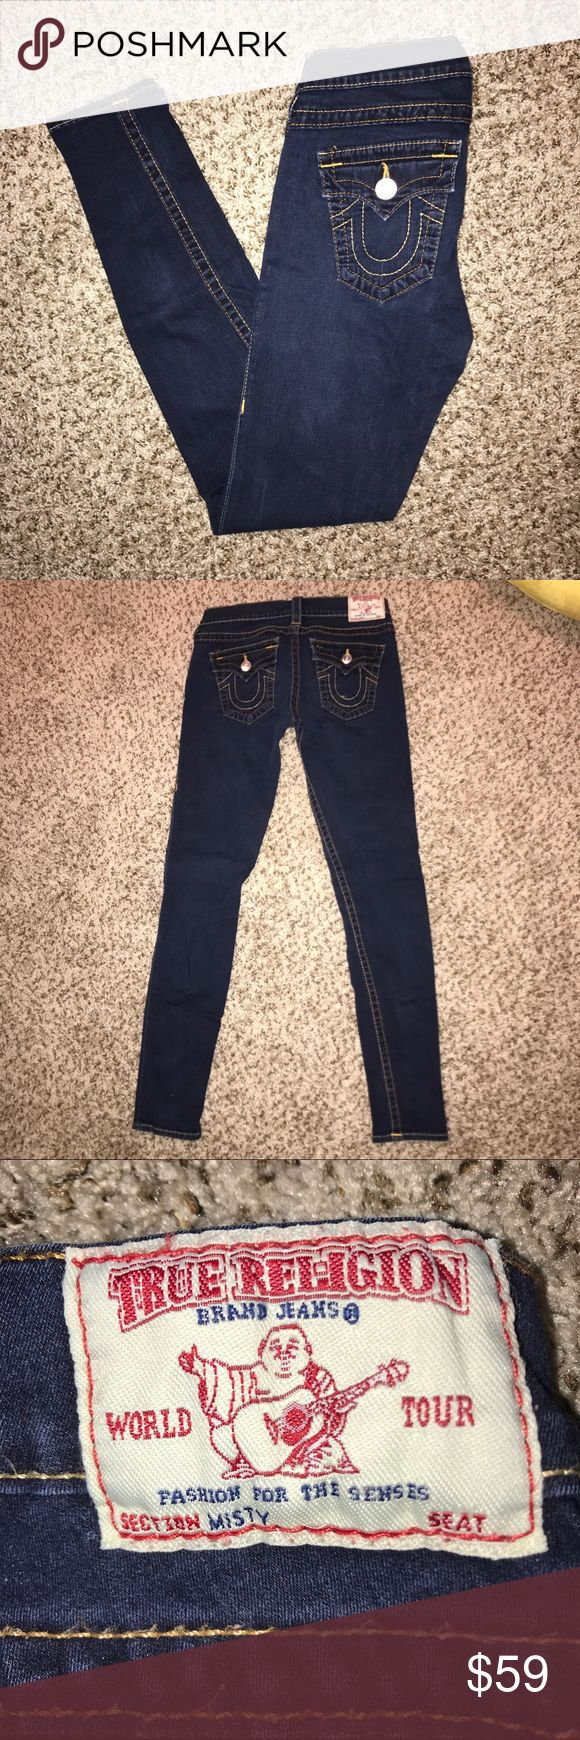 """💯Authentic True Religion Misty Jeggings These are a size 28 (US 6 Reg) pair of True Religion Misty Dark Wash Jeggings. These are in beautiful, mint condition as I took care of these well. Purchased from Saks 5th Avenue. Front pockets are fake, back pockets are real. Super tight jegging fit with zip and button closure. Inseam measures 29"""". I don't want to part with these but they don't fit me anymore. Made in 🇺🇸. Stretchy but run small. Fit more like a 26 waist. Price firm! True Religion…"""